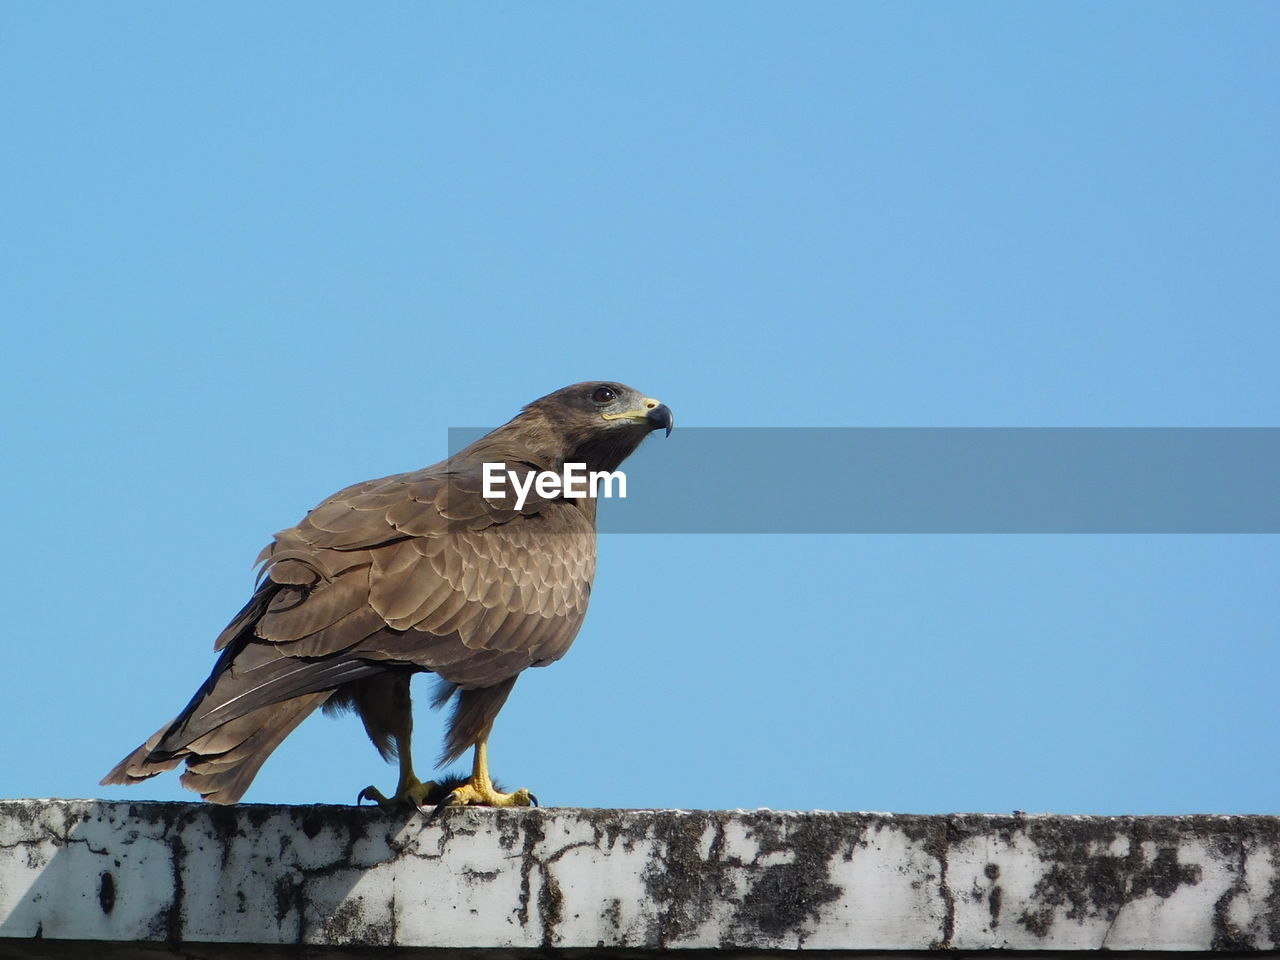 bird, sky, animal themes, animal, animal wildlife, vertebrate, copy space, clear sky, one animal, animals in the wild, perching, low angle view, day, bird of prey, blue, nature, no people, outdoors, wall, eagle